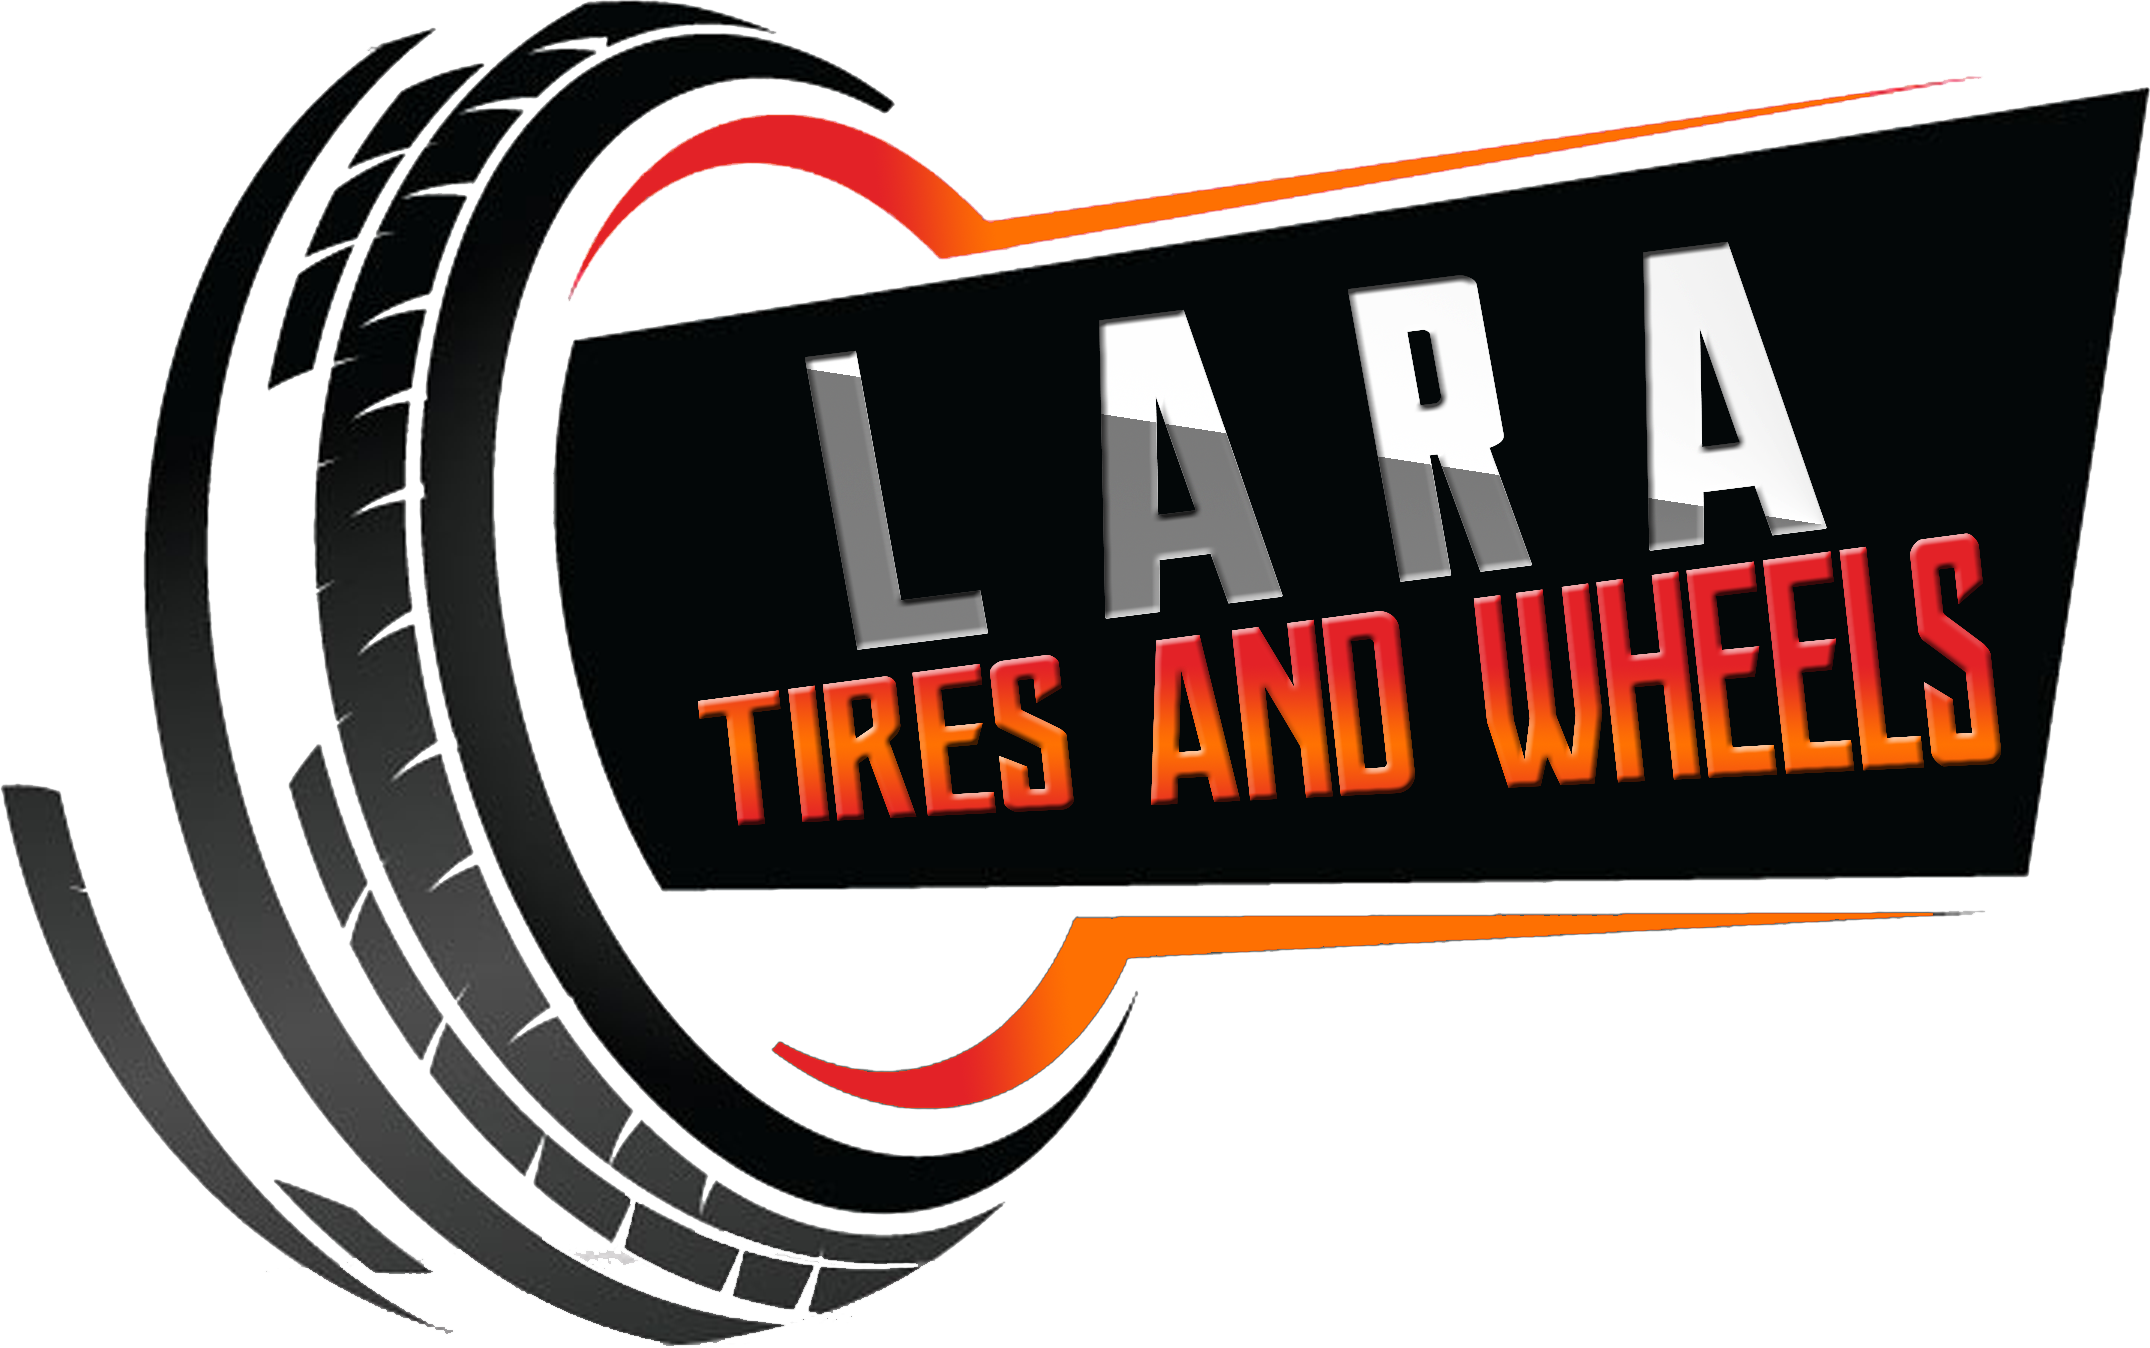 Lara Tires & Wheels Auto Service